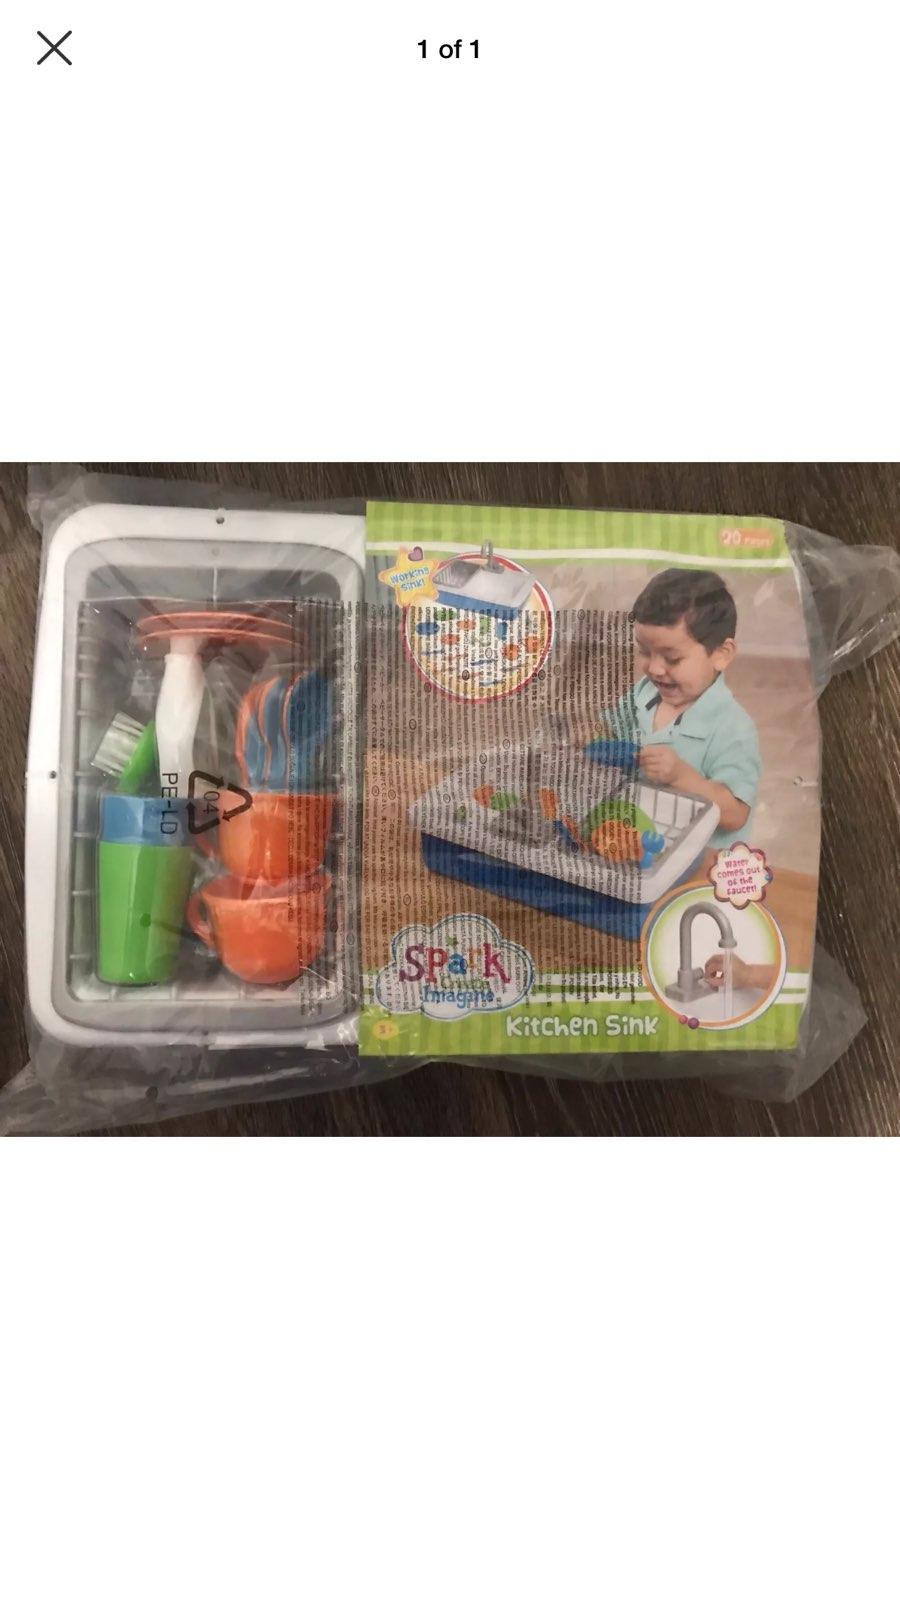 Spark Toy Kitchen Sink Brand New - Mercari: BUY & SELL THINGS YOU LOVE